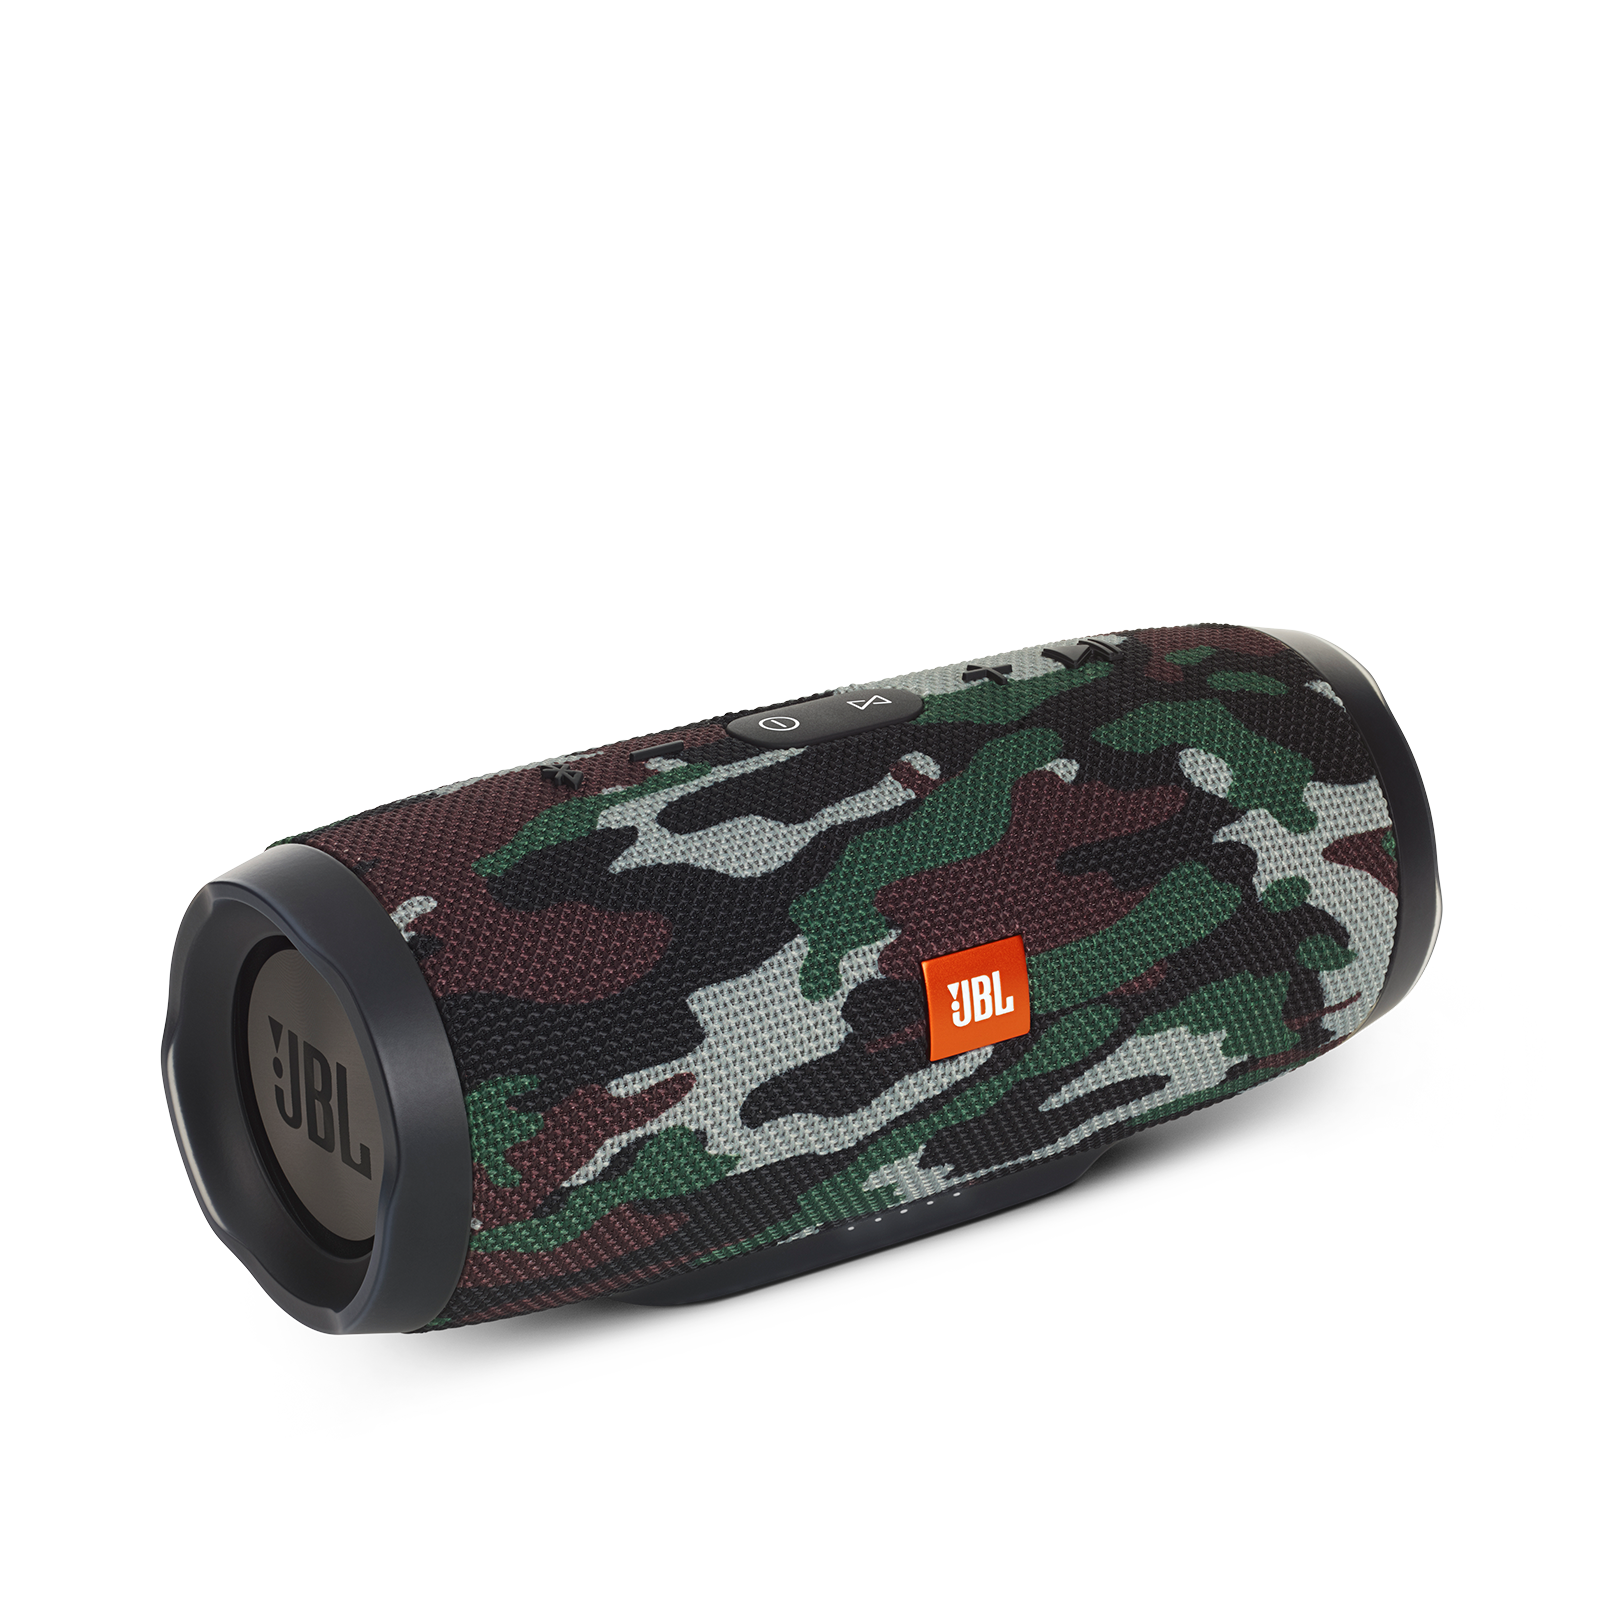 Jbl Charge 3 Special Edition Camouflage Portable Bluetooth